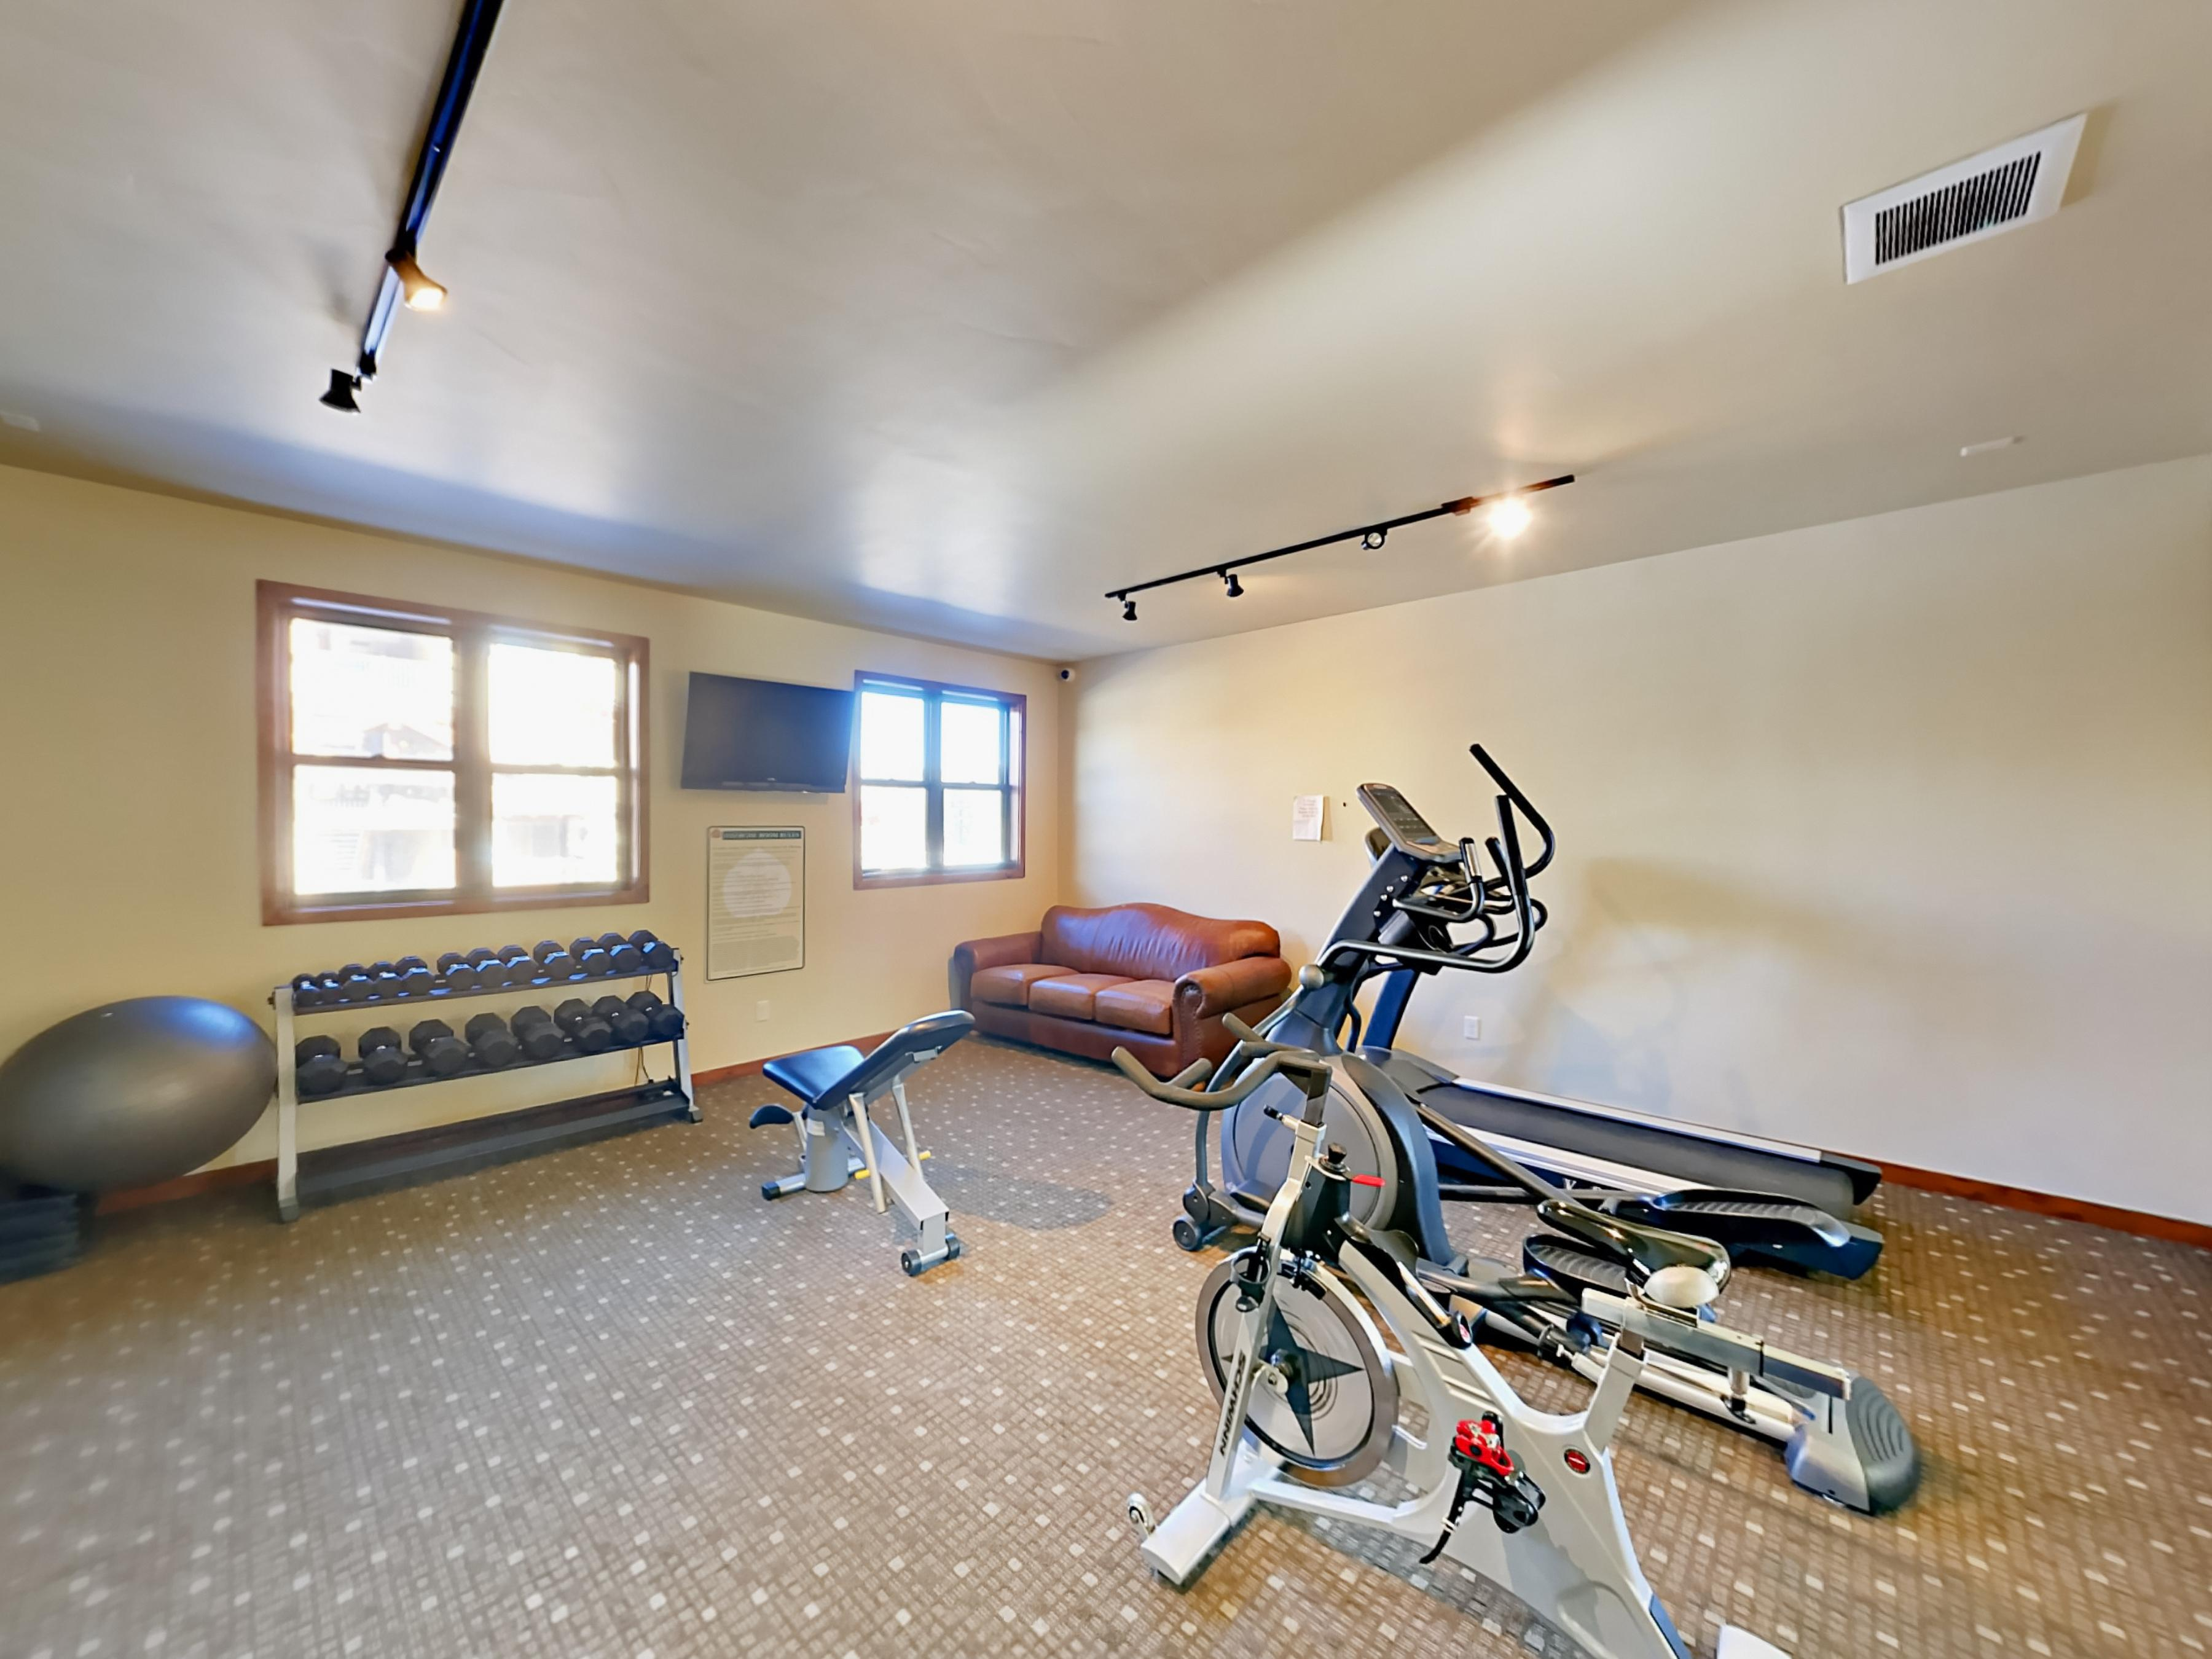 Amenities includes access to a shared gym.